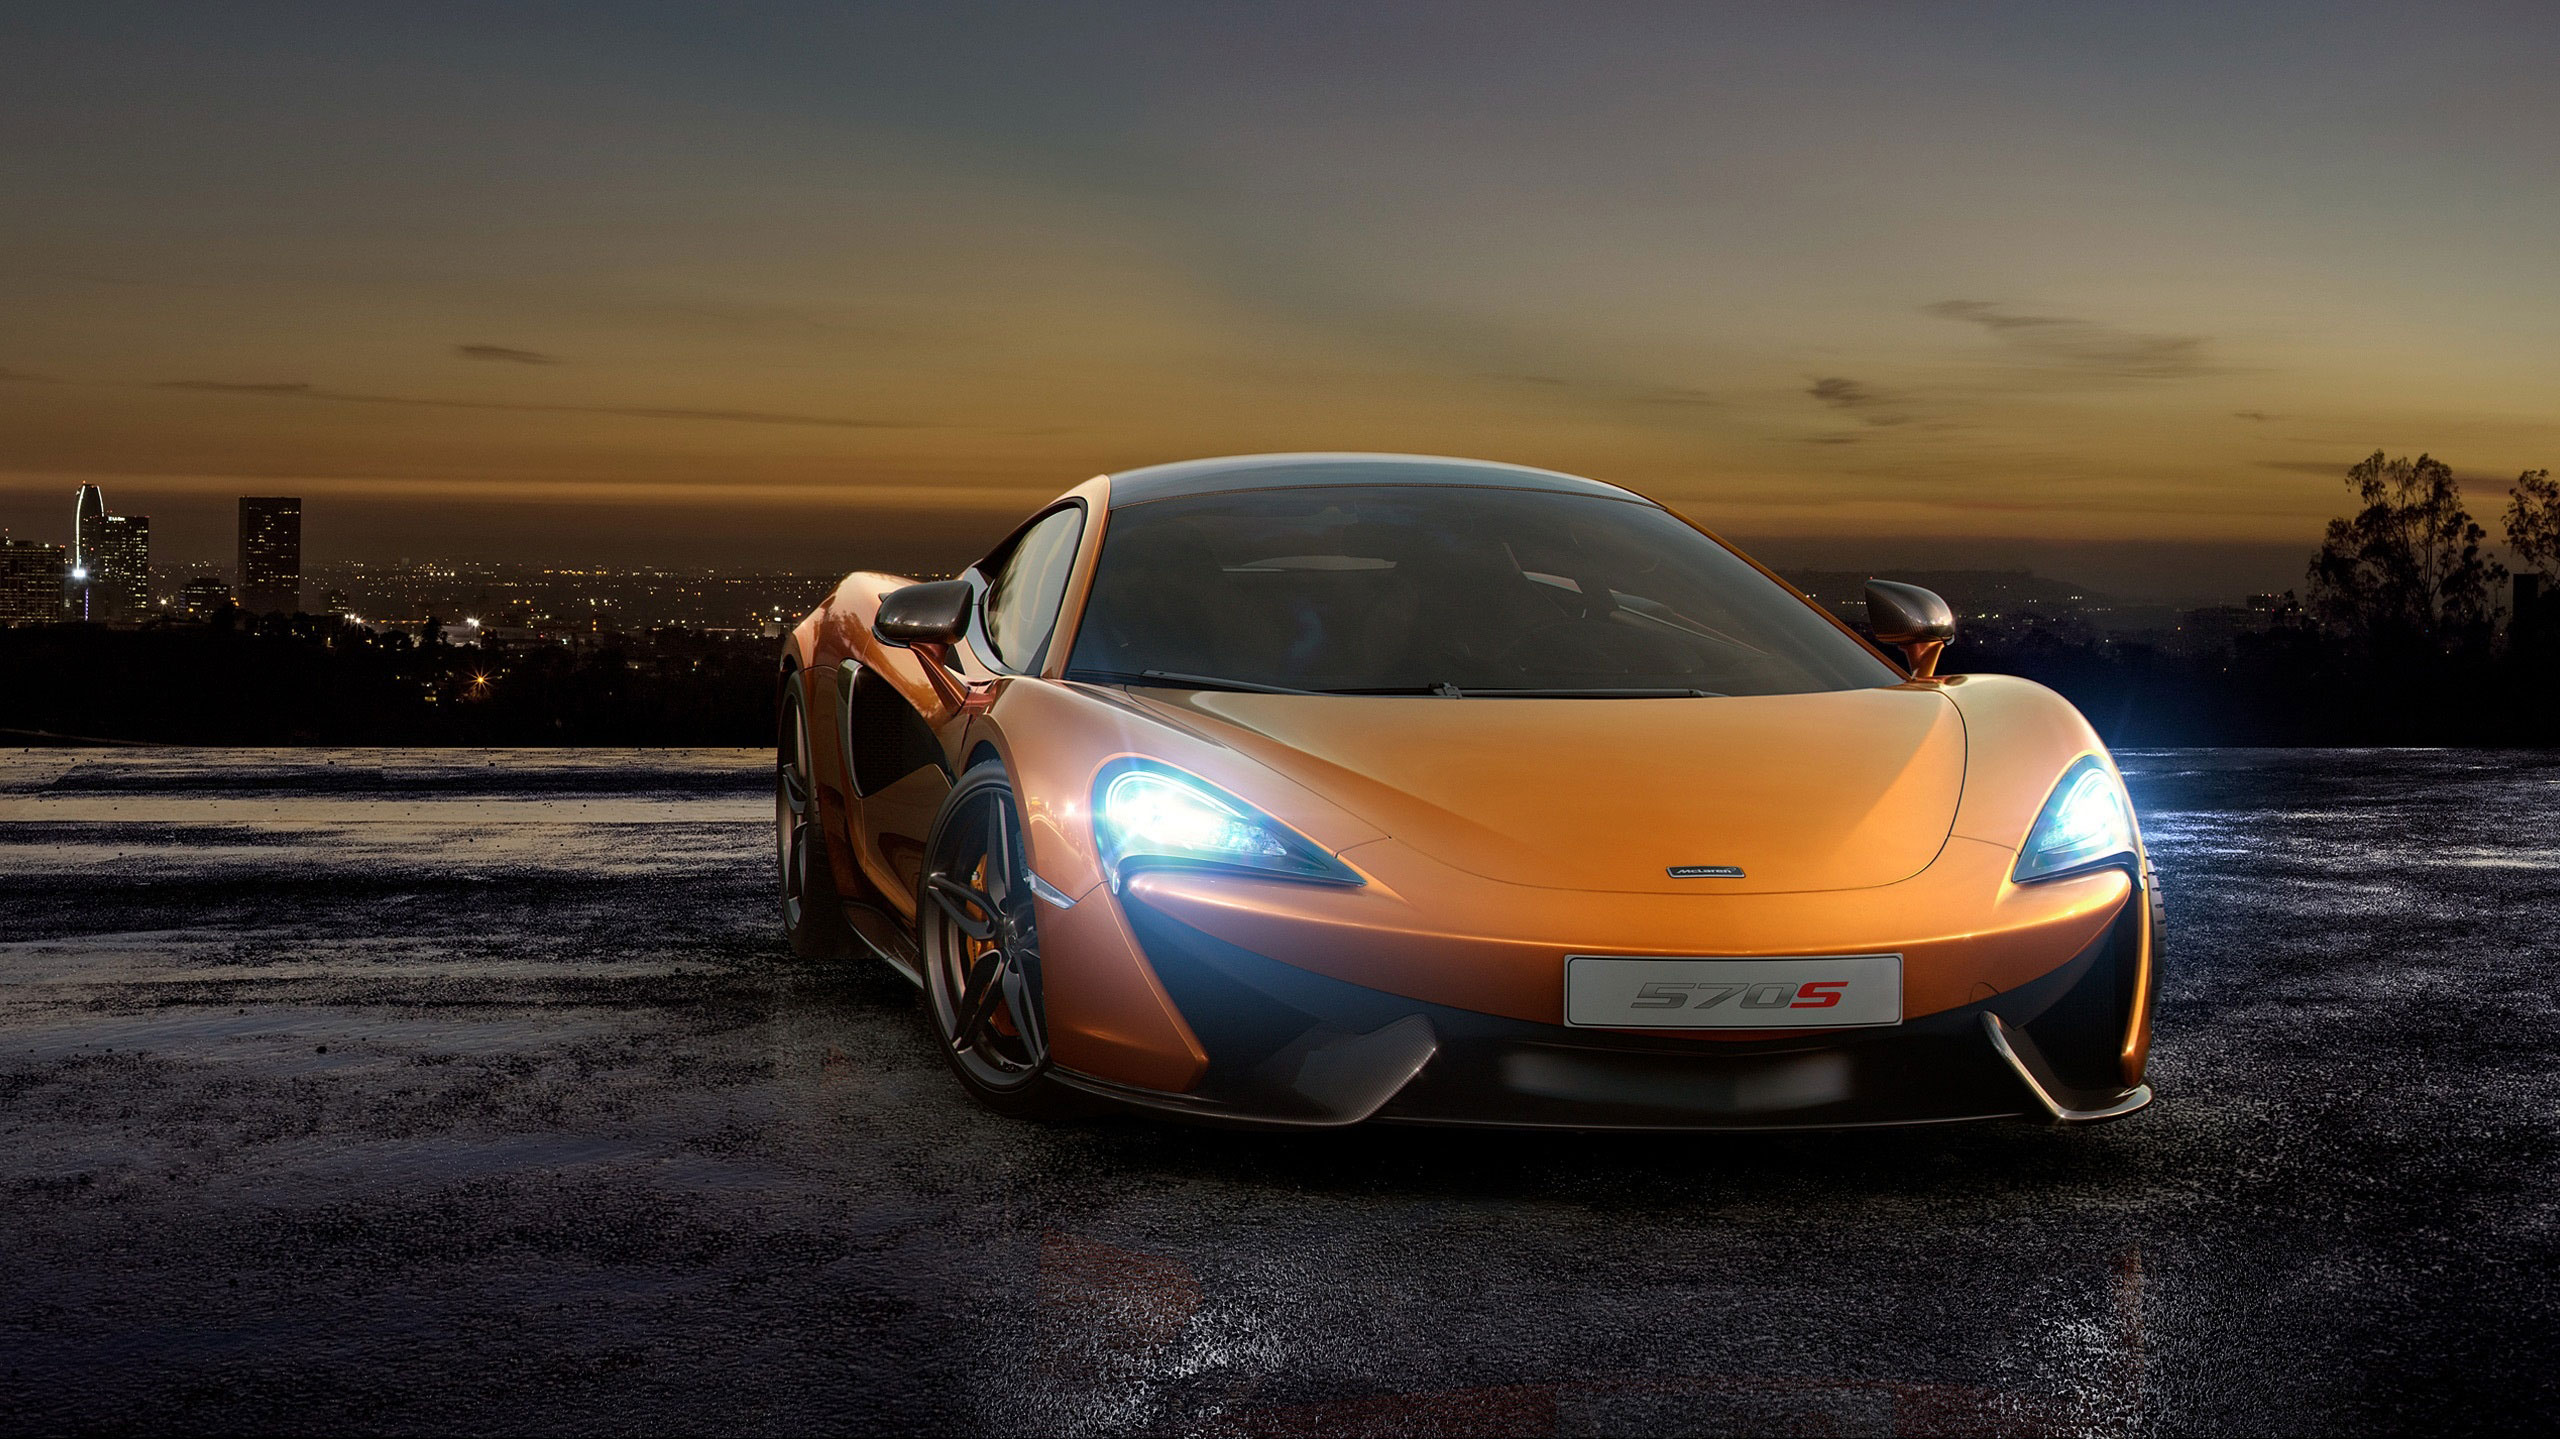 Download Cool Car Wallpapers For Sporty Desktop The 2560x1440